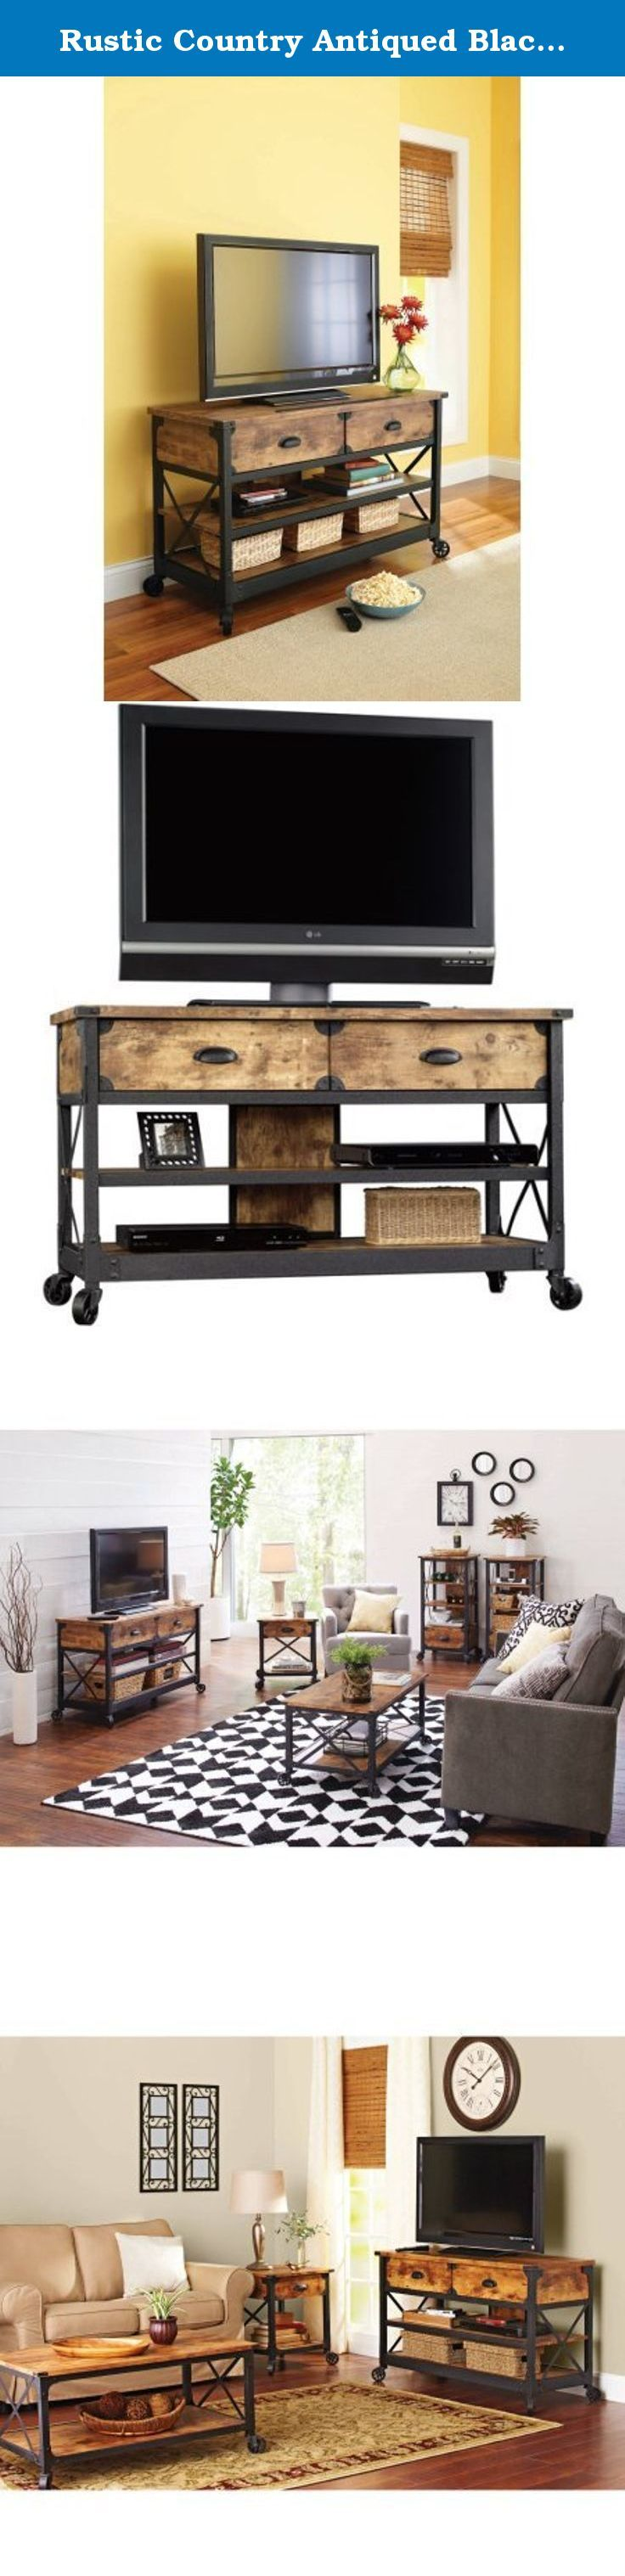 """Rustic Country Antiqued Black/pine Panel Tv Stand for Tvs up to 52"""". This Better Homes and Gardens Rustic Country Panel TV Stand features a warm, distressed-look engineered wood base and antiqued black metal trim which evoke the charm of a well-loved antique. Bring the feeling of a vintage piece sourced in the California Wine country to your living room, den or TV room. With two spacious shelves for storing media components, books, magazines or knick knacks and two drawers for storing…"""